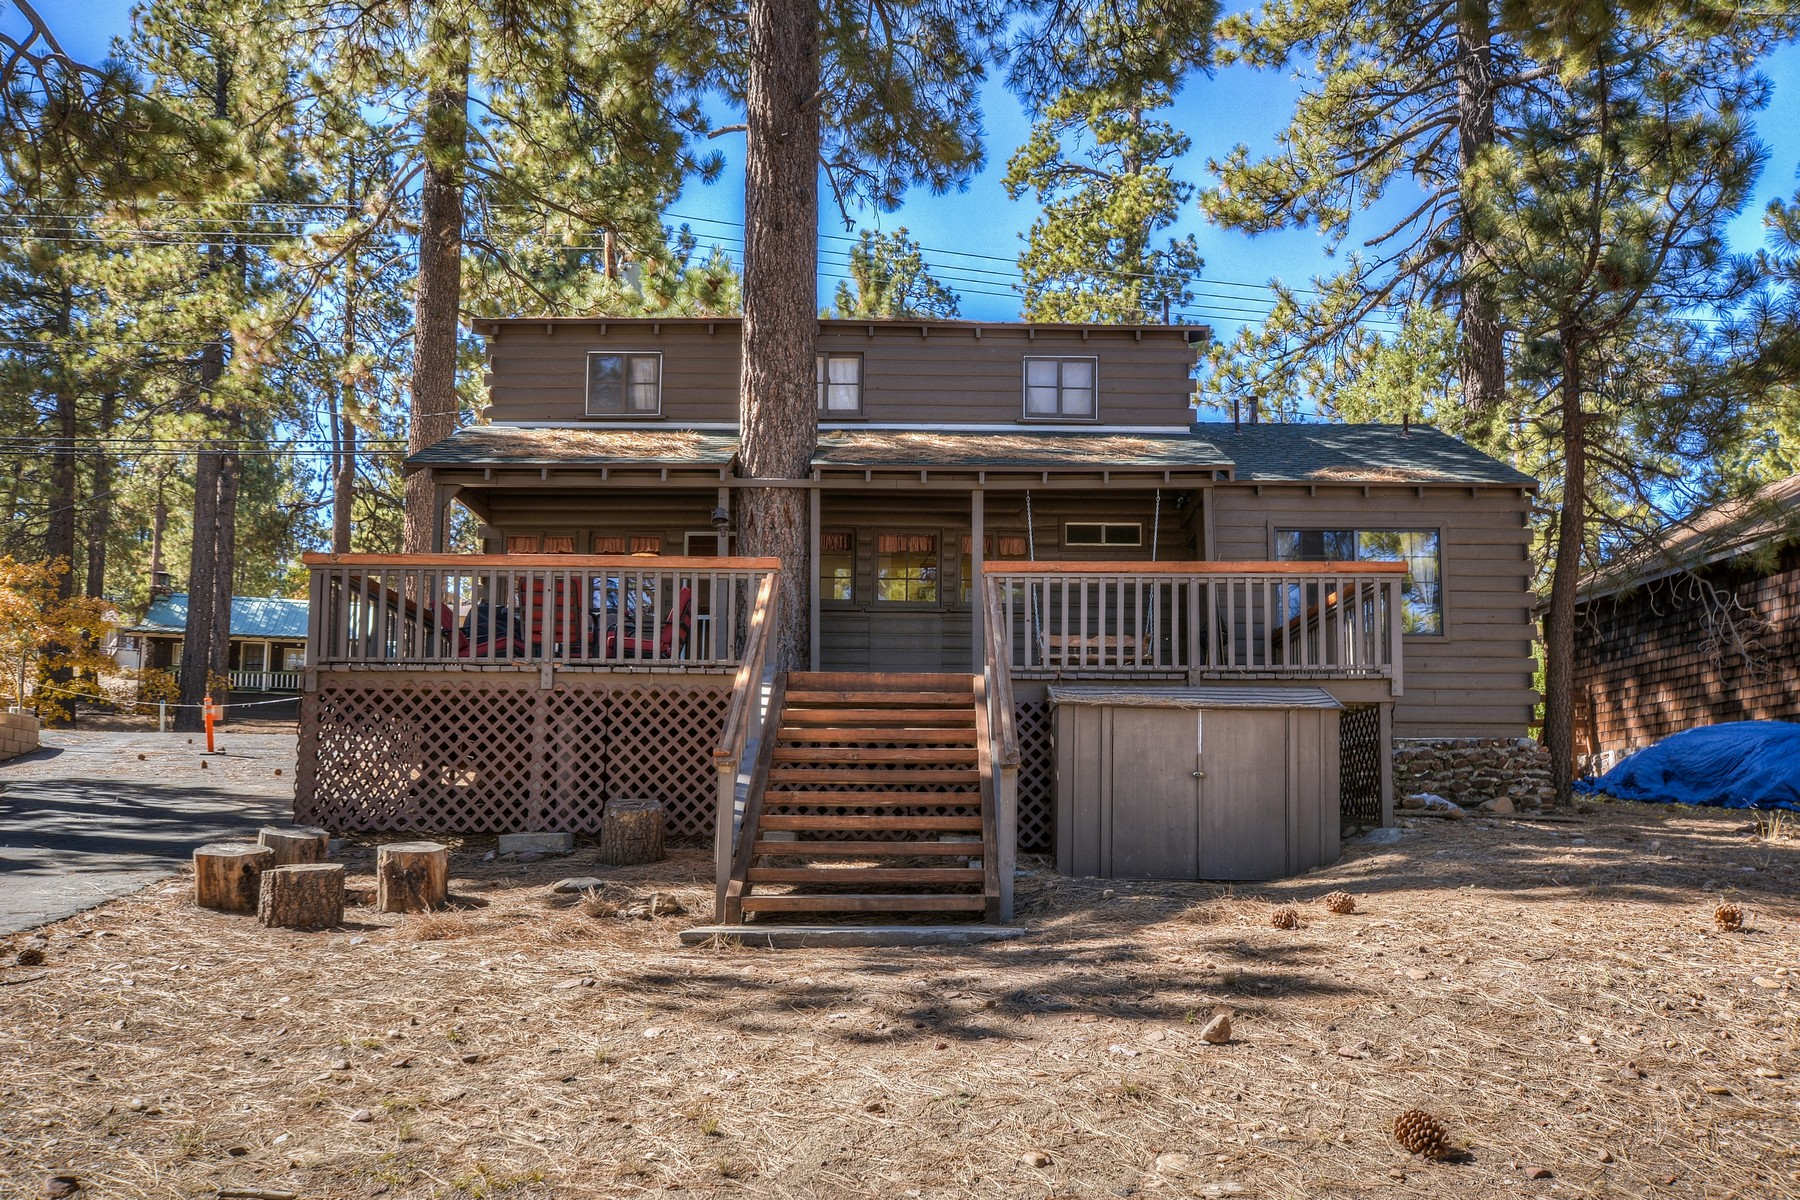 Single Family Home for Sale at 40230 Lakeview Drive Big Bear Lake, Ca. 92315 40230 Lakeview Drive Big Bear Lake, California 92315 United States